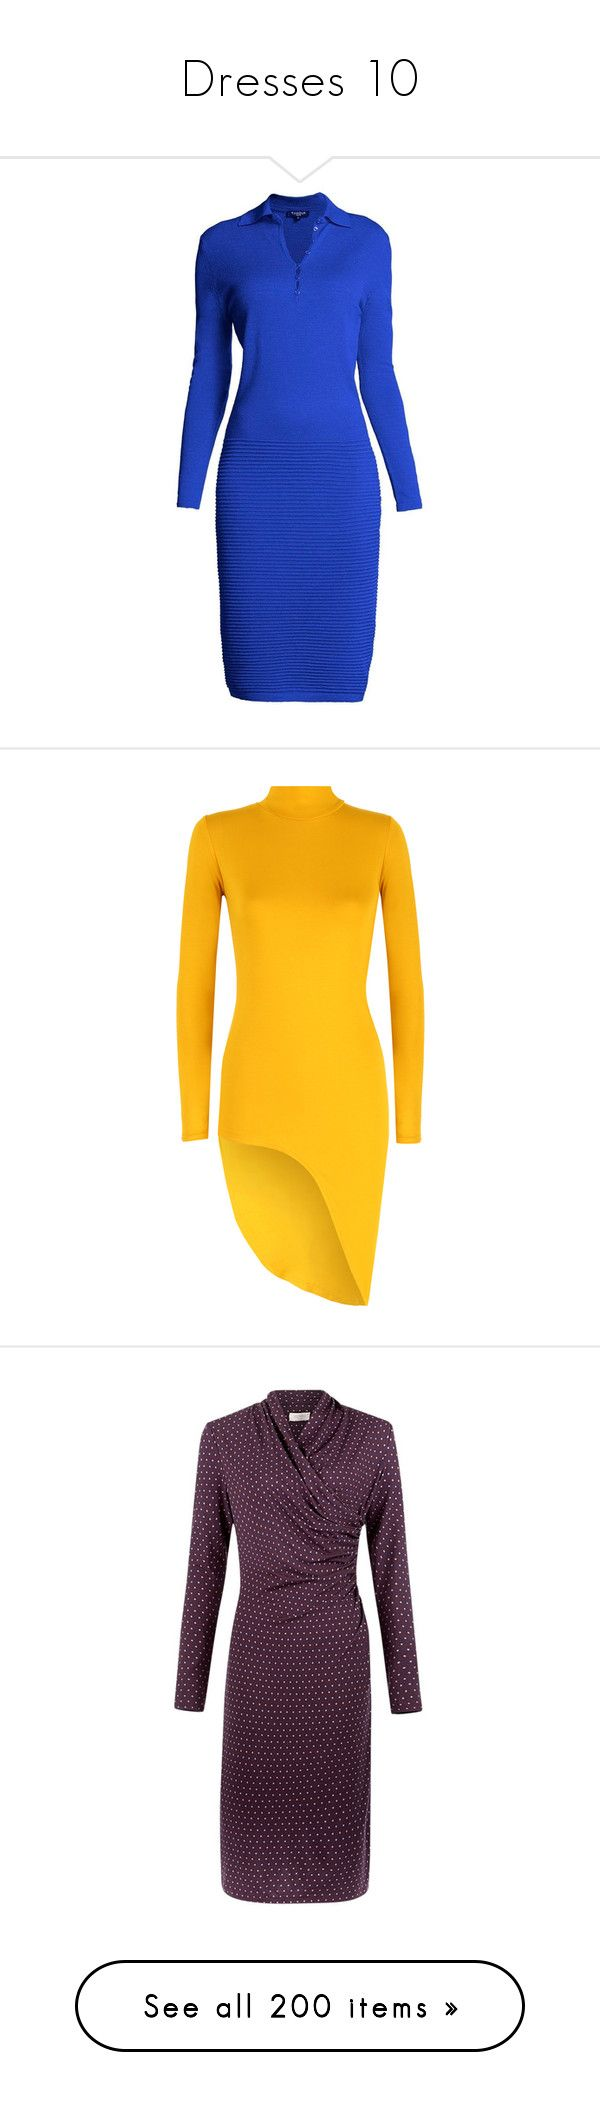 """Dresses 10"" by caili ❤ liked on Polyvore featuring dresses, ribbed dress, rib dress, slip on dress, blue dress, woven dress, mustard, special occasion dresses, holiday dresses and long sleeve turtleneck dress"